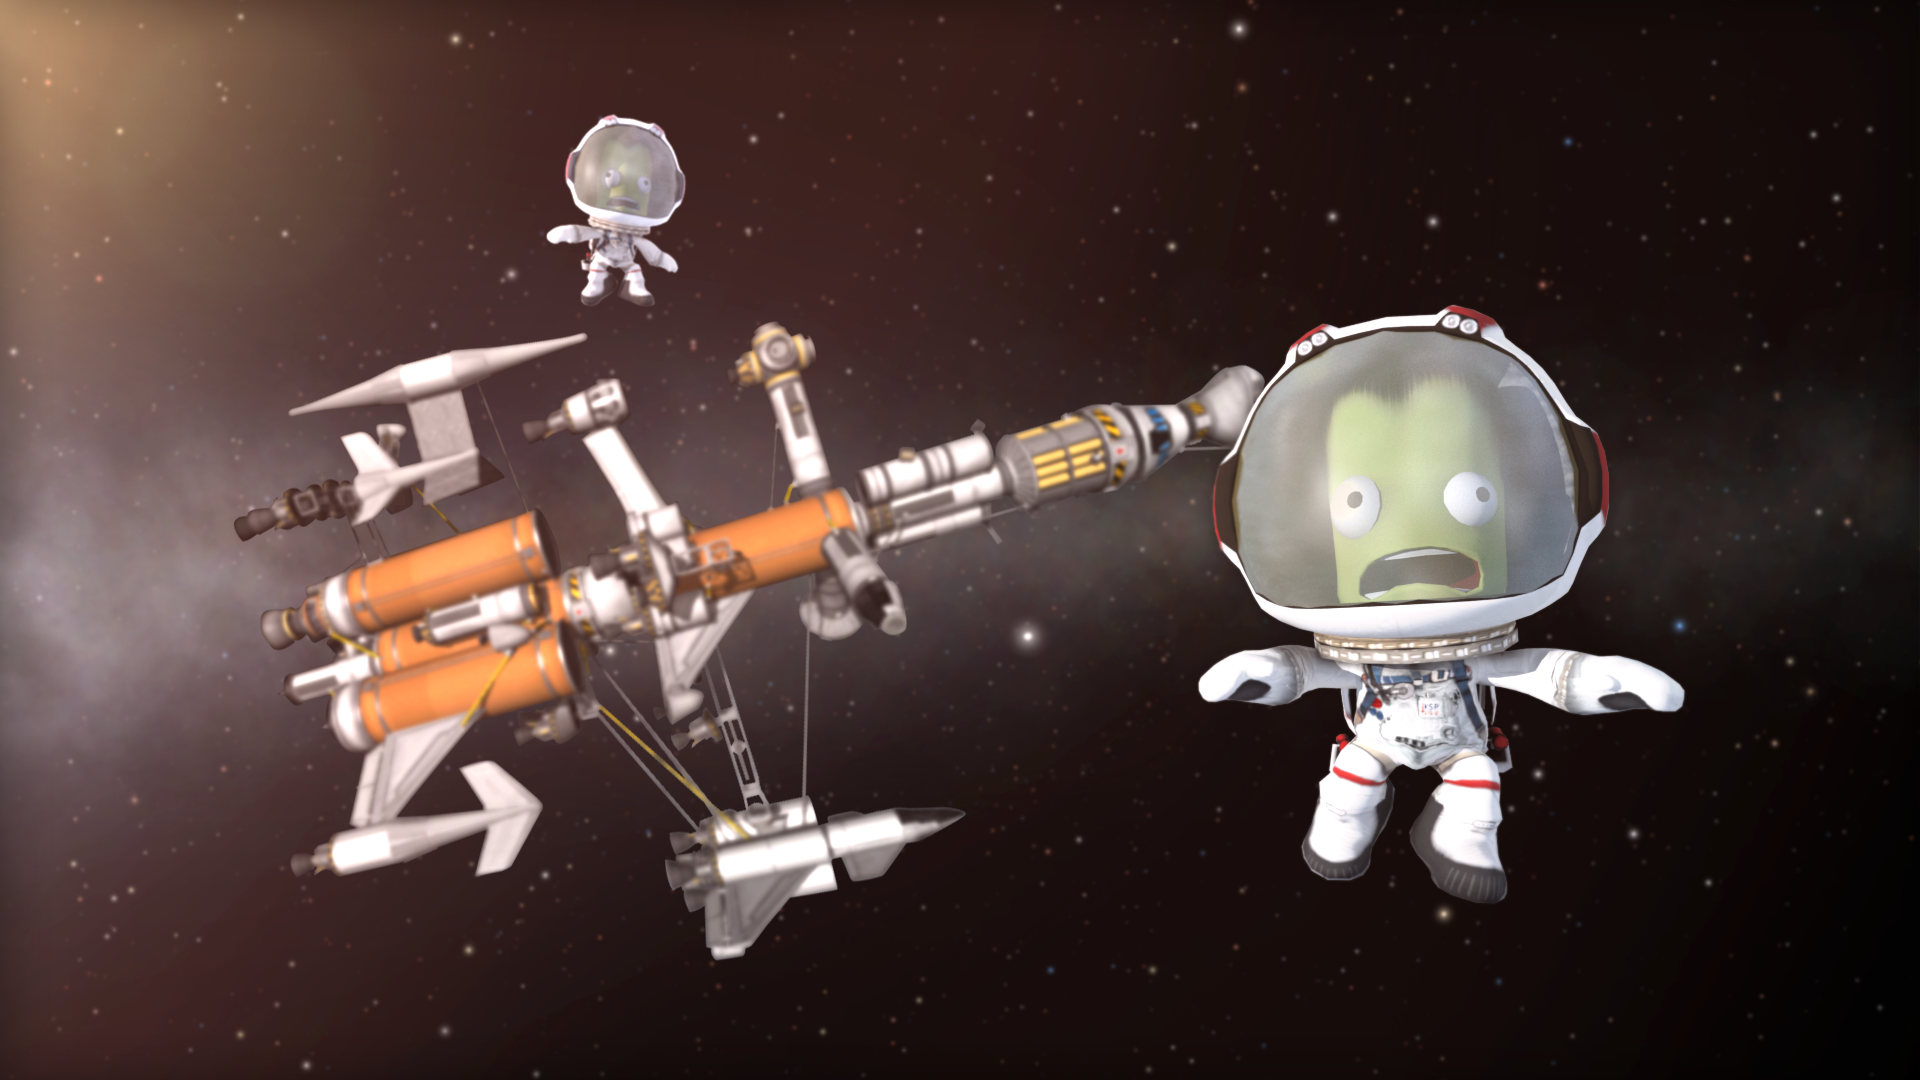 kerbal space program free download - HD 1350×1080